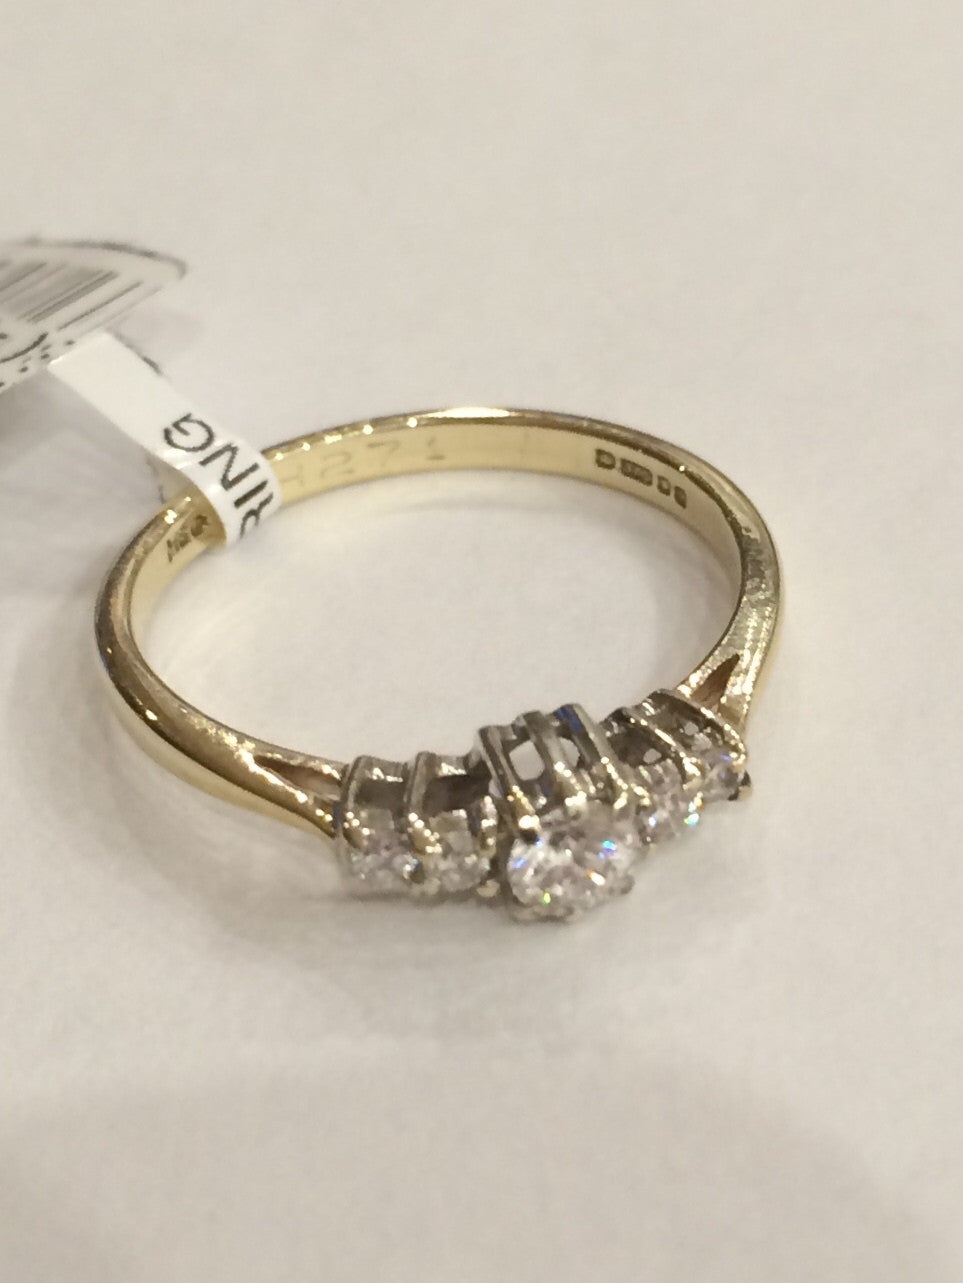 9CT YG 5 STONE 0.22cts DIAMOND RING ASQUITH - Robert Openshaw Fine Jewellery